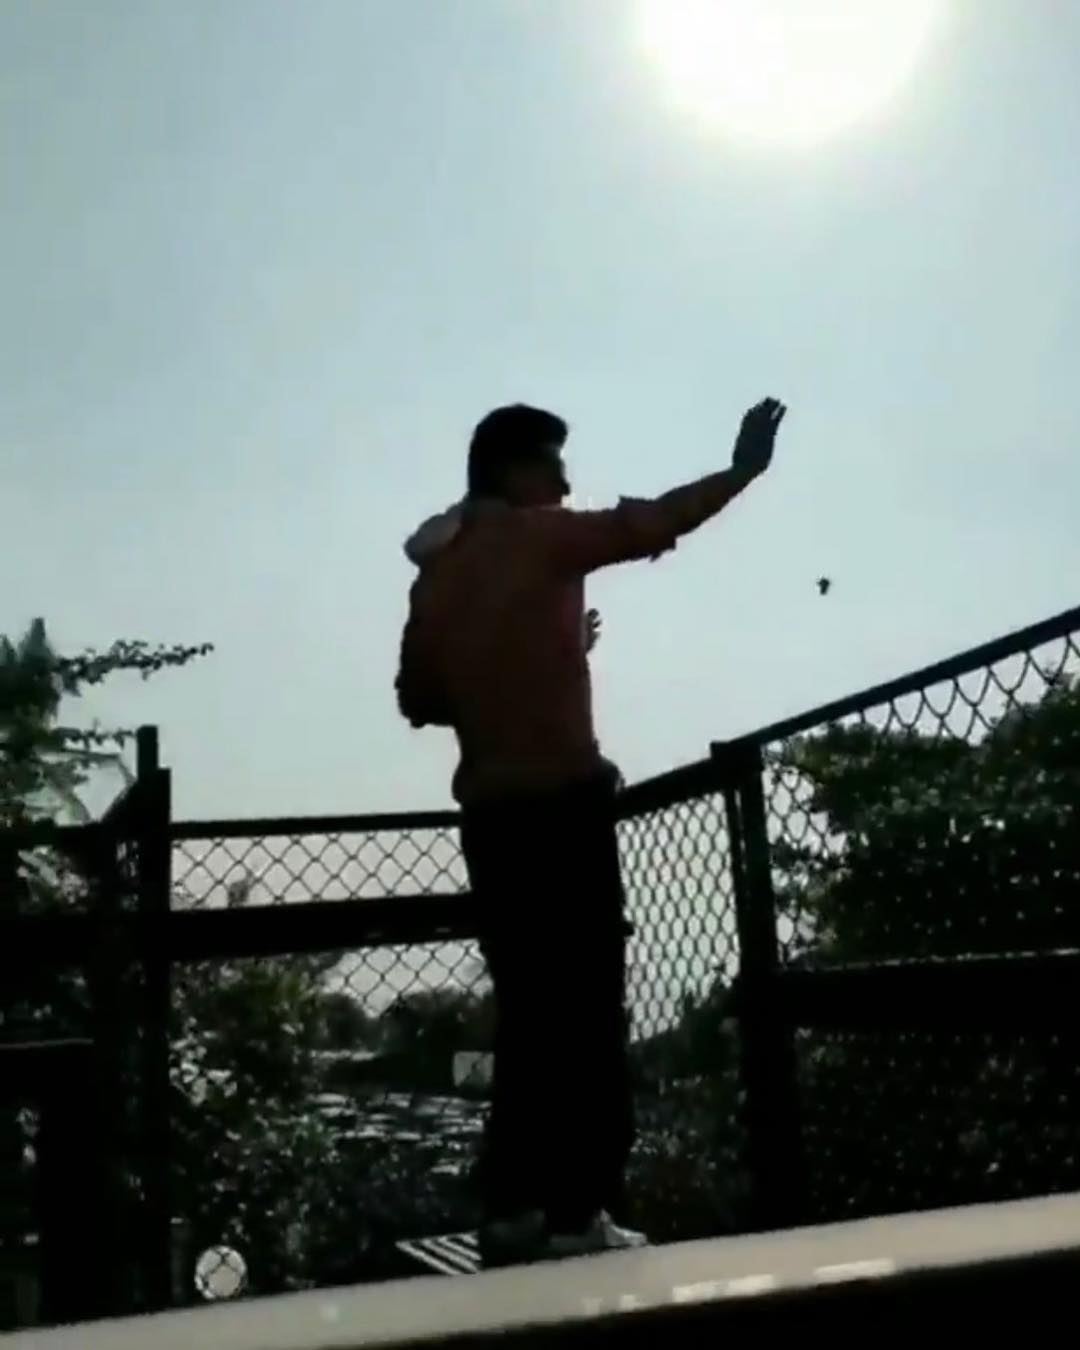 Shah Rukh Khan Waving Hand outside home to his fans